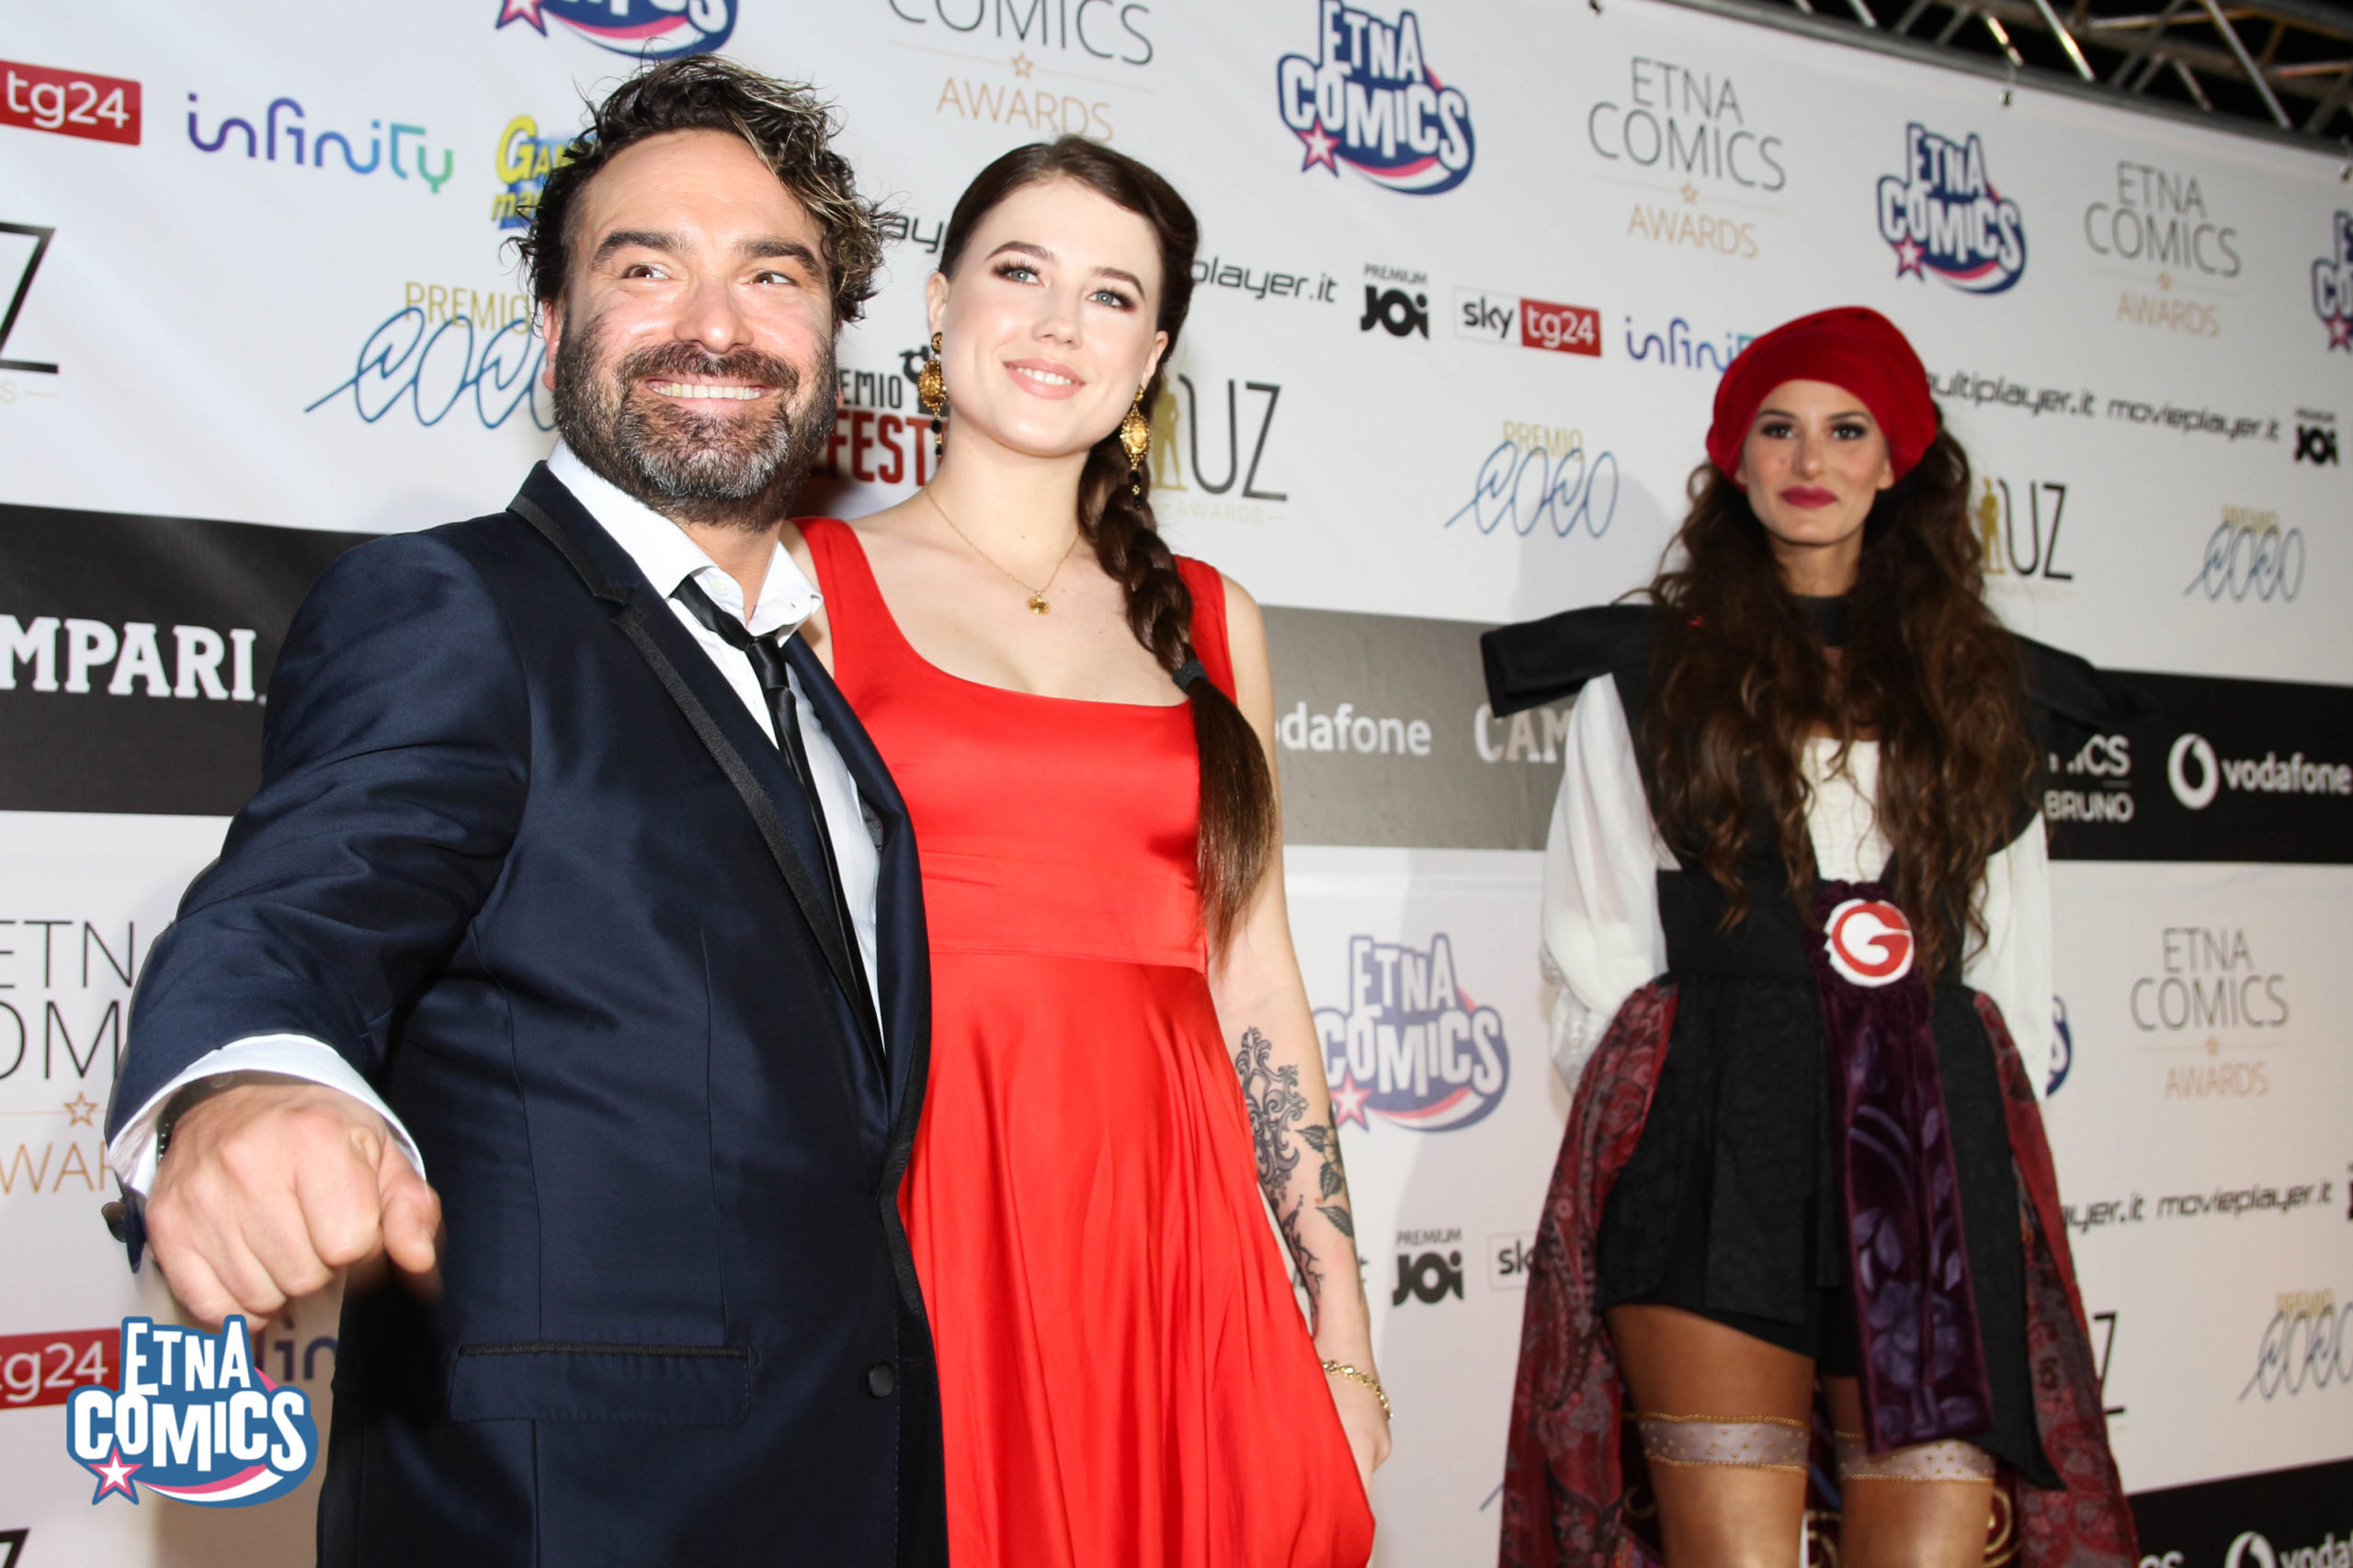 Galecki Red Carpet Etna Comics Awards 2019 Keo Marketing